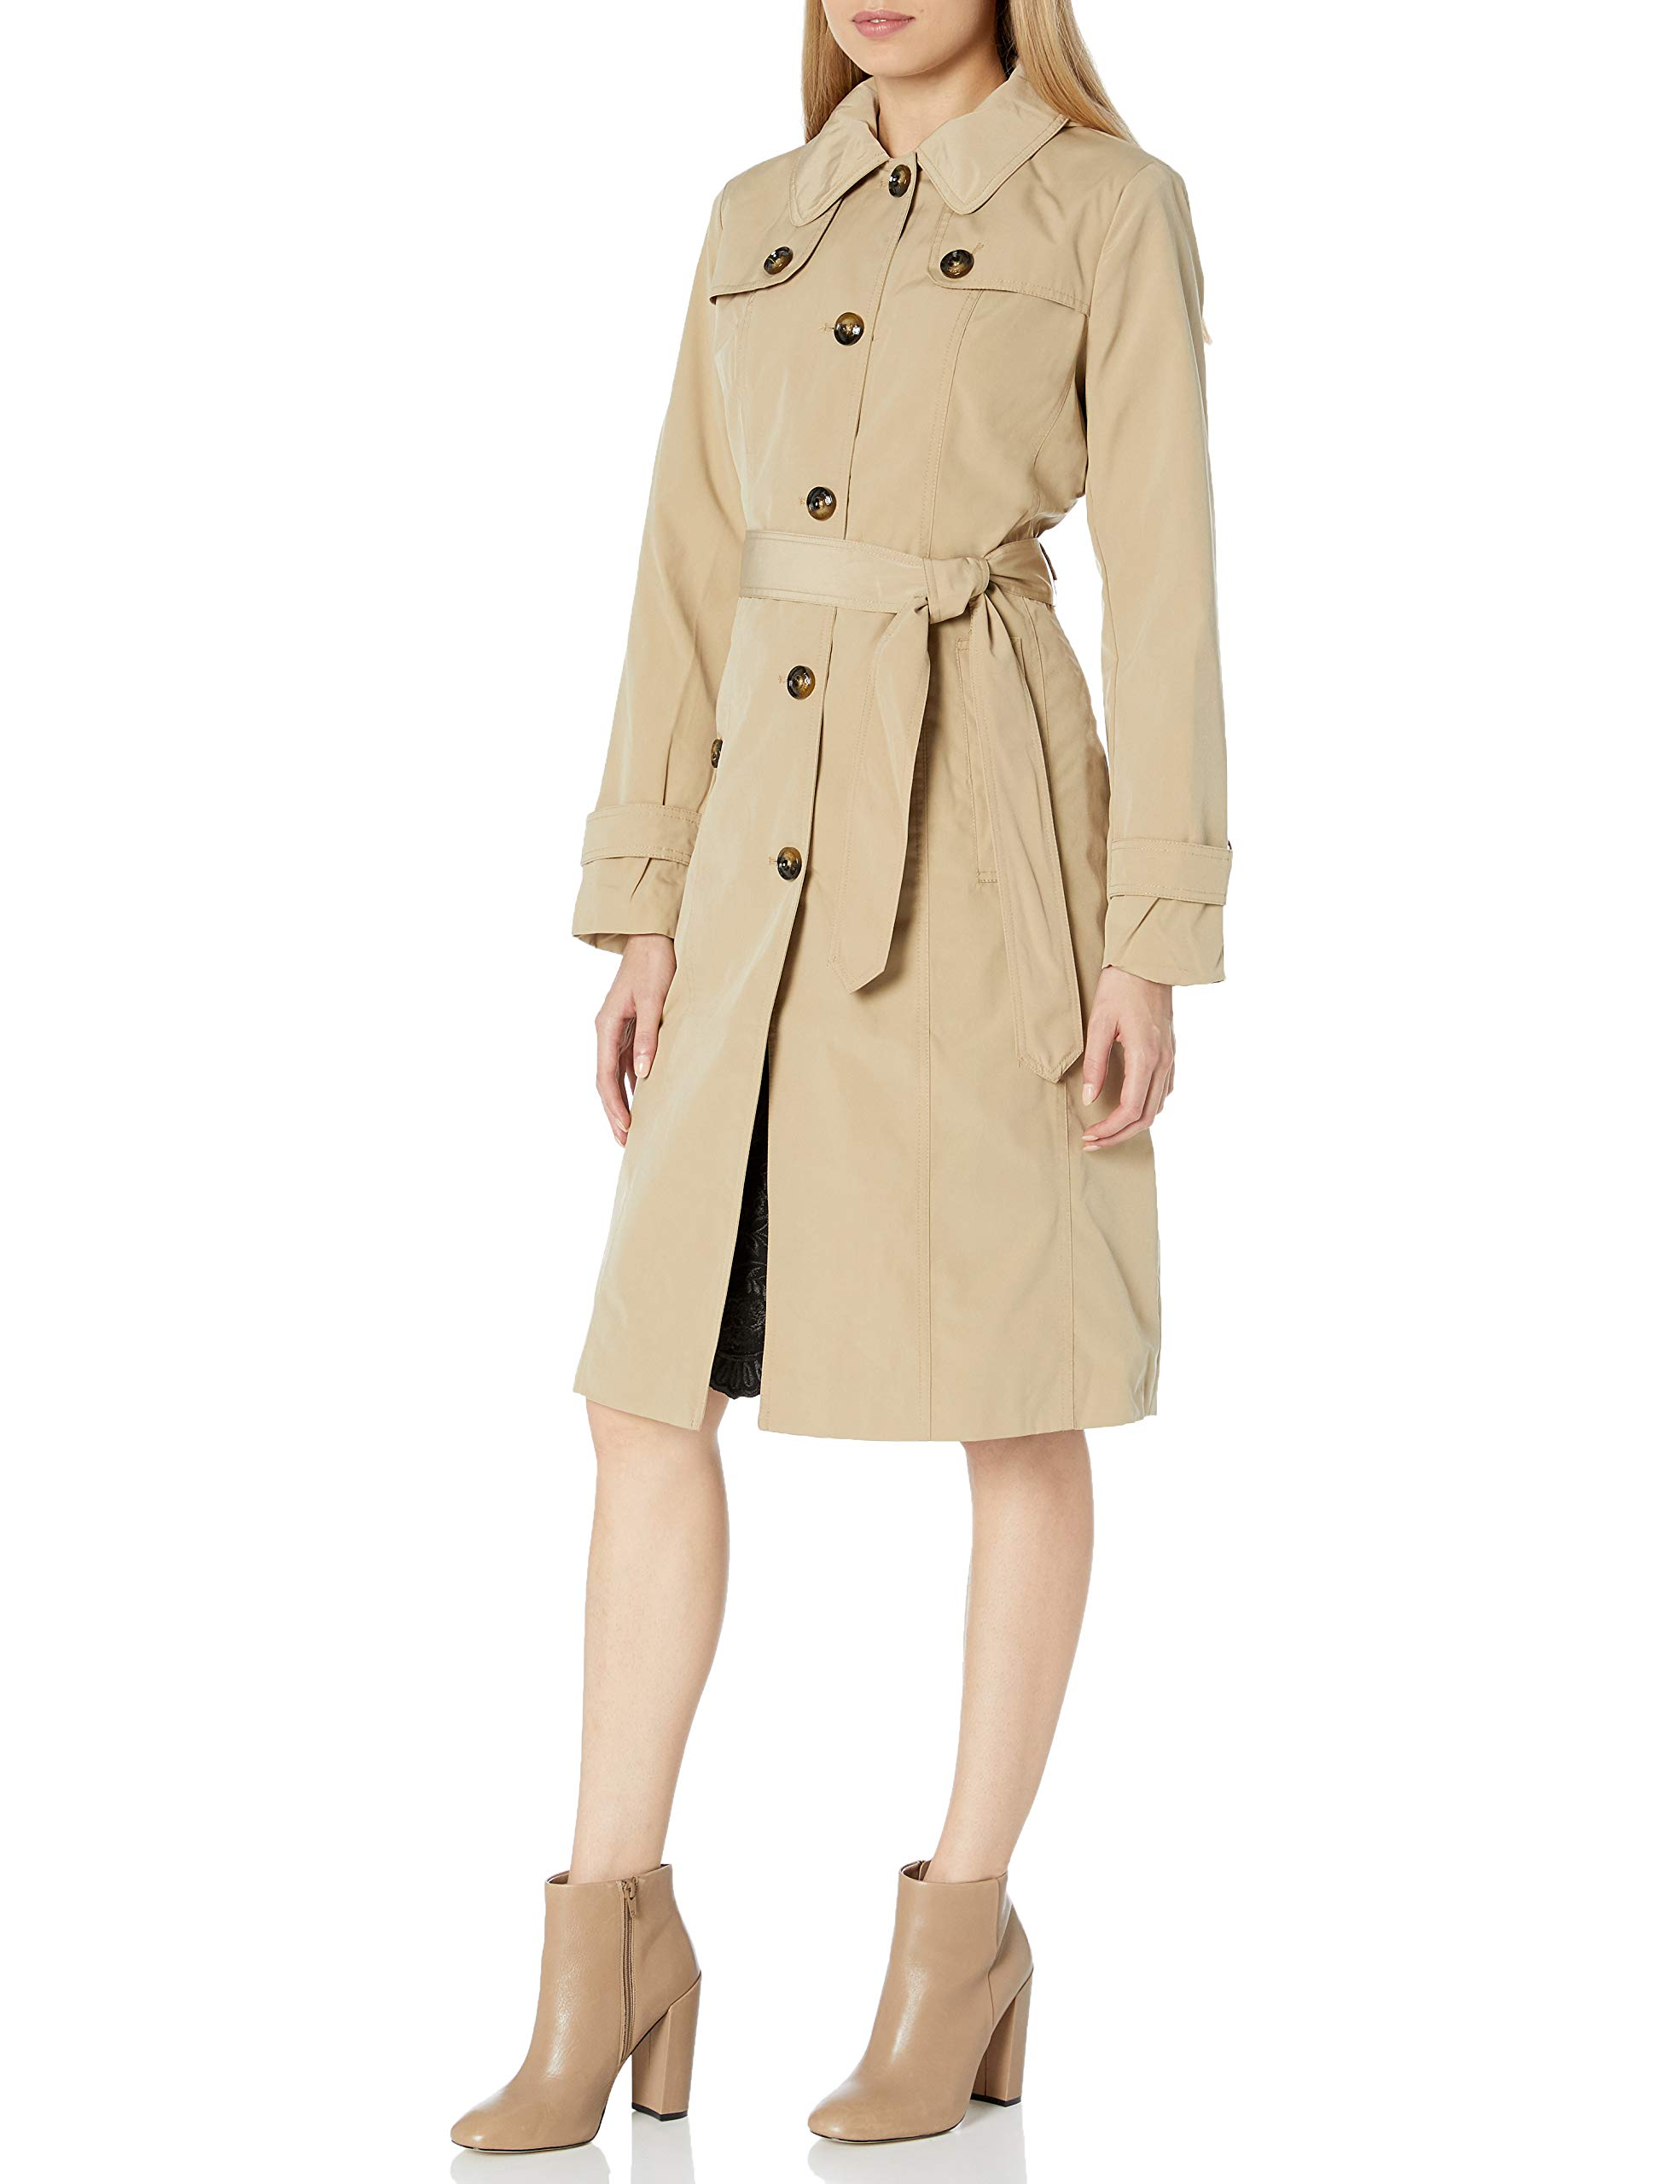 London Fog Women's Single Breasted Belted Trench with Hood, British Khaki, Medium by London Fog